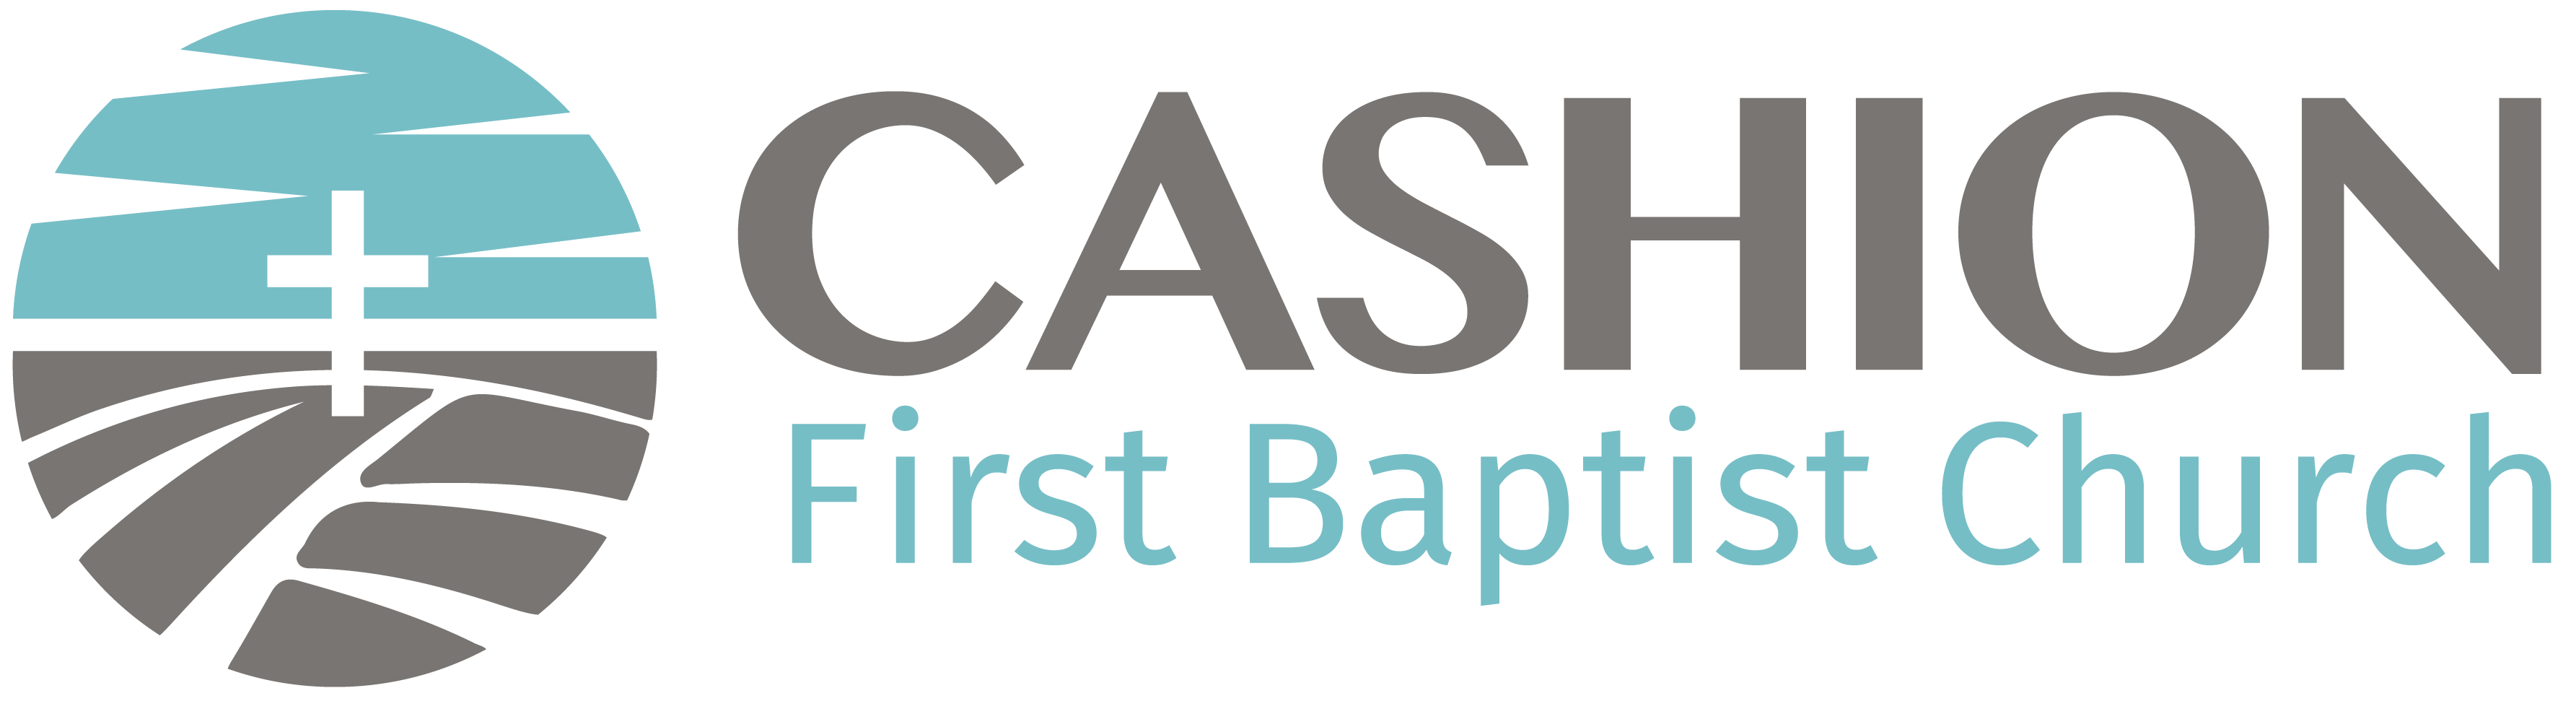 Cashion First Baptist Church